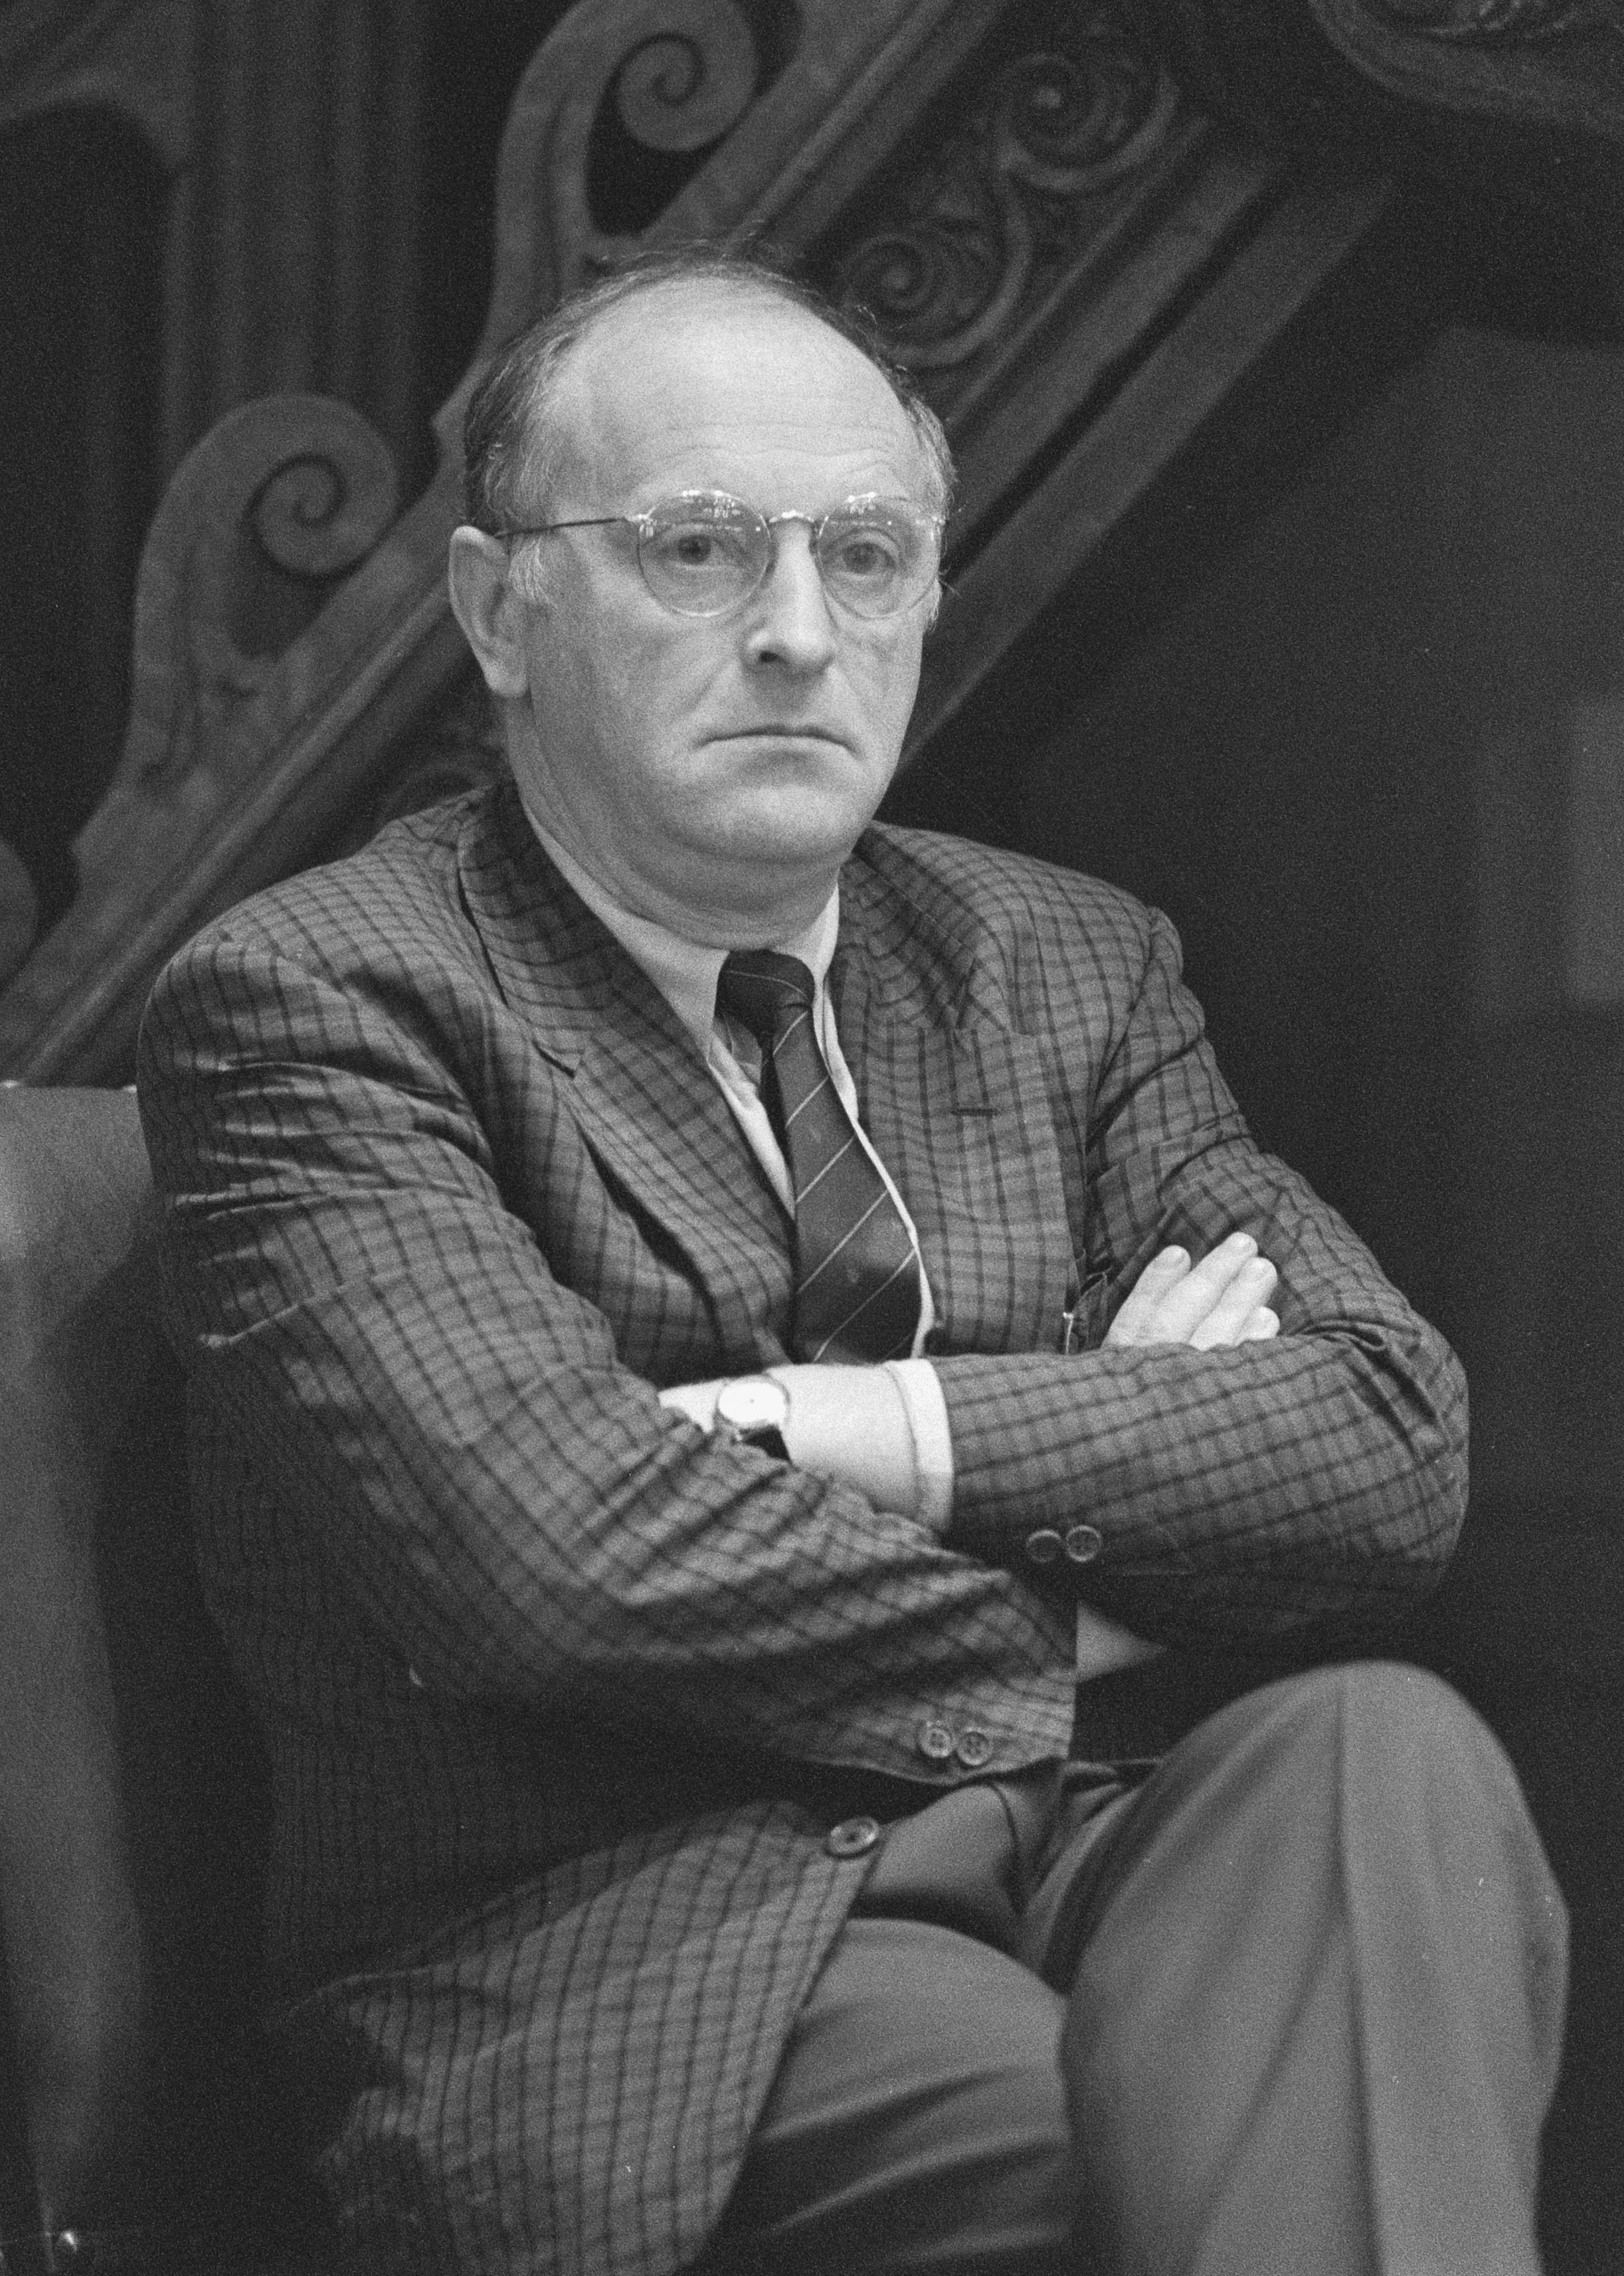 Portrait of Joseph Brodsky